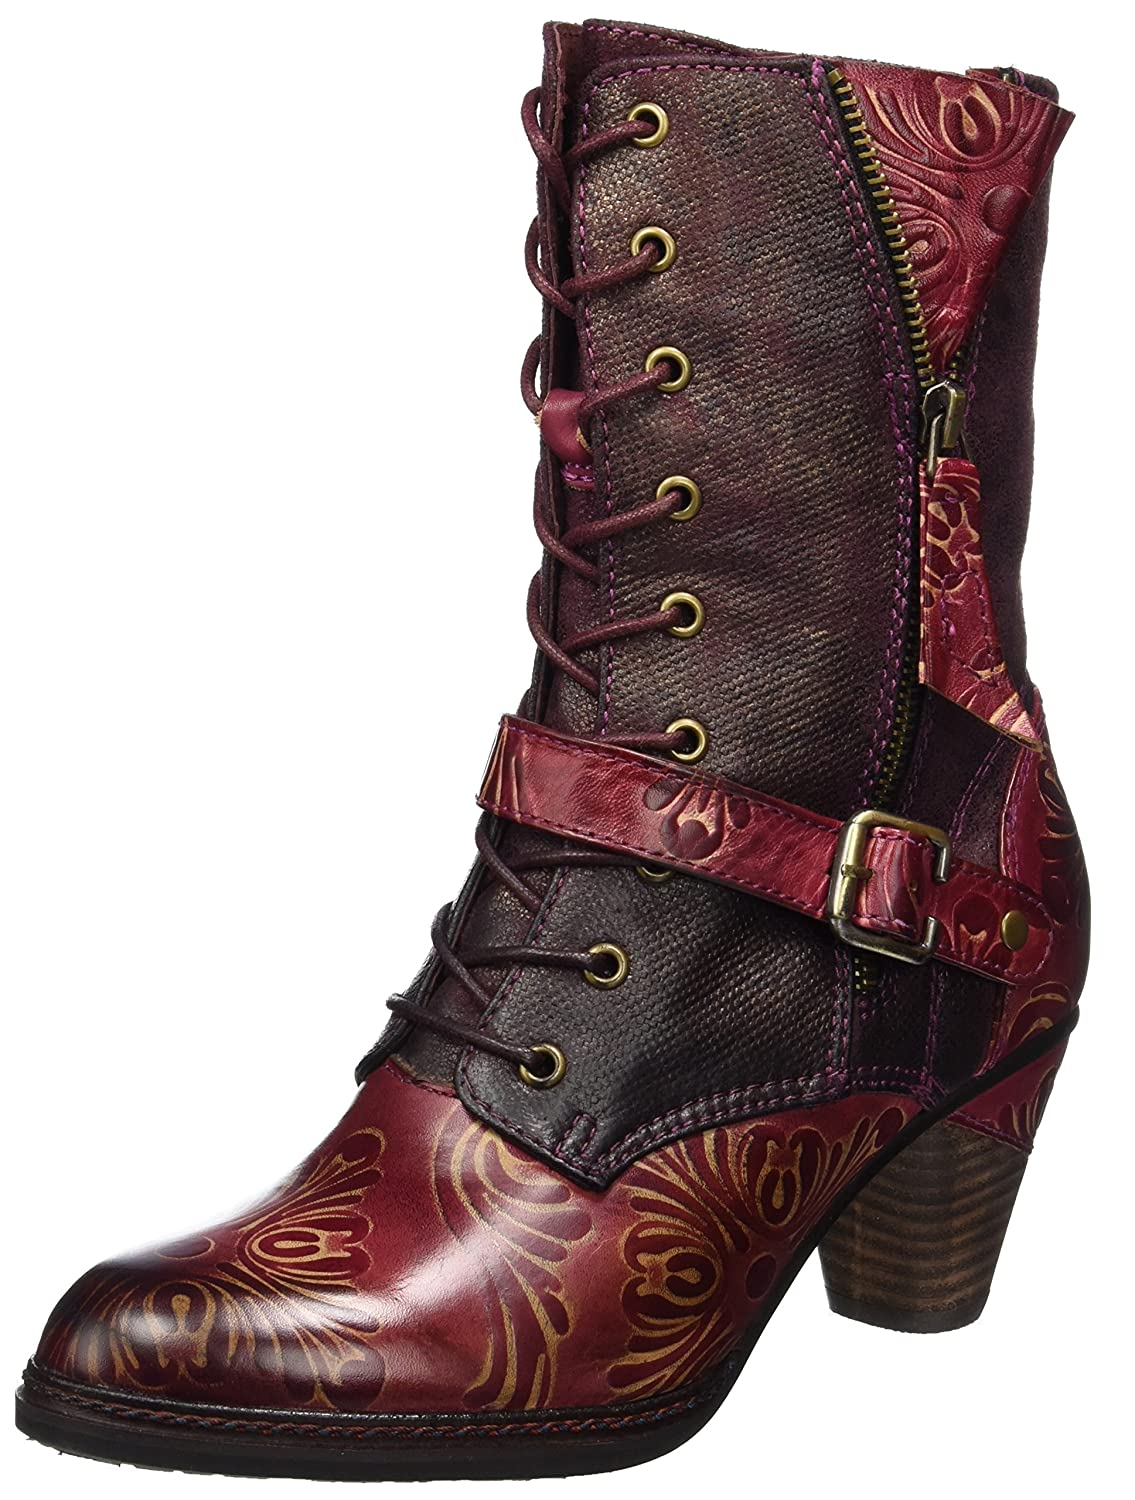 Laura 19261 Vita Alizee 11, Laura Bottes Classiques Femme Rot 11, (Wine) 884b991 - latesttechnology.space